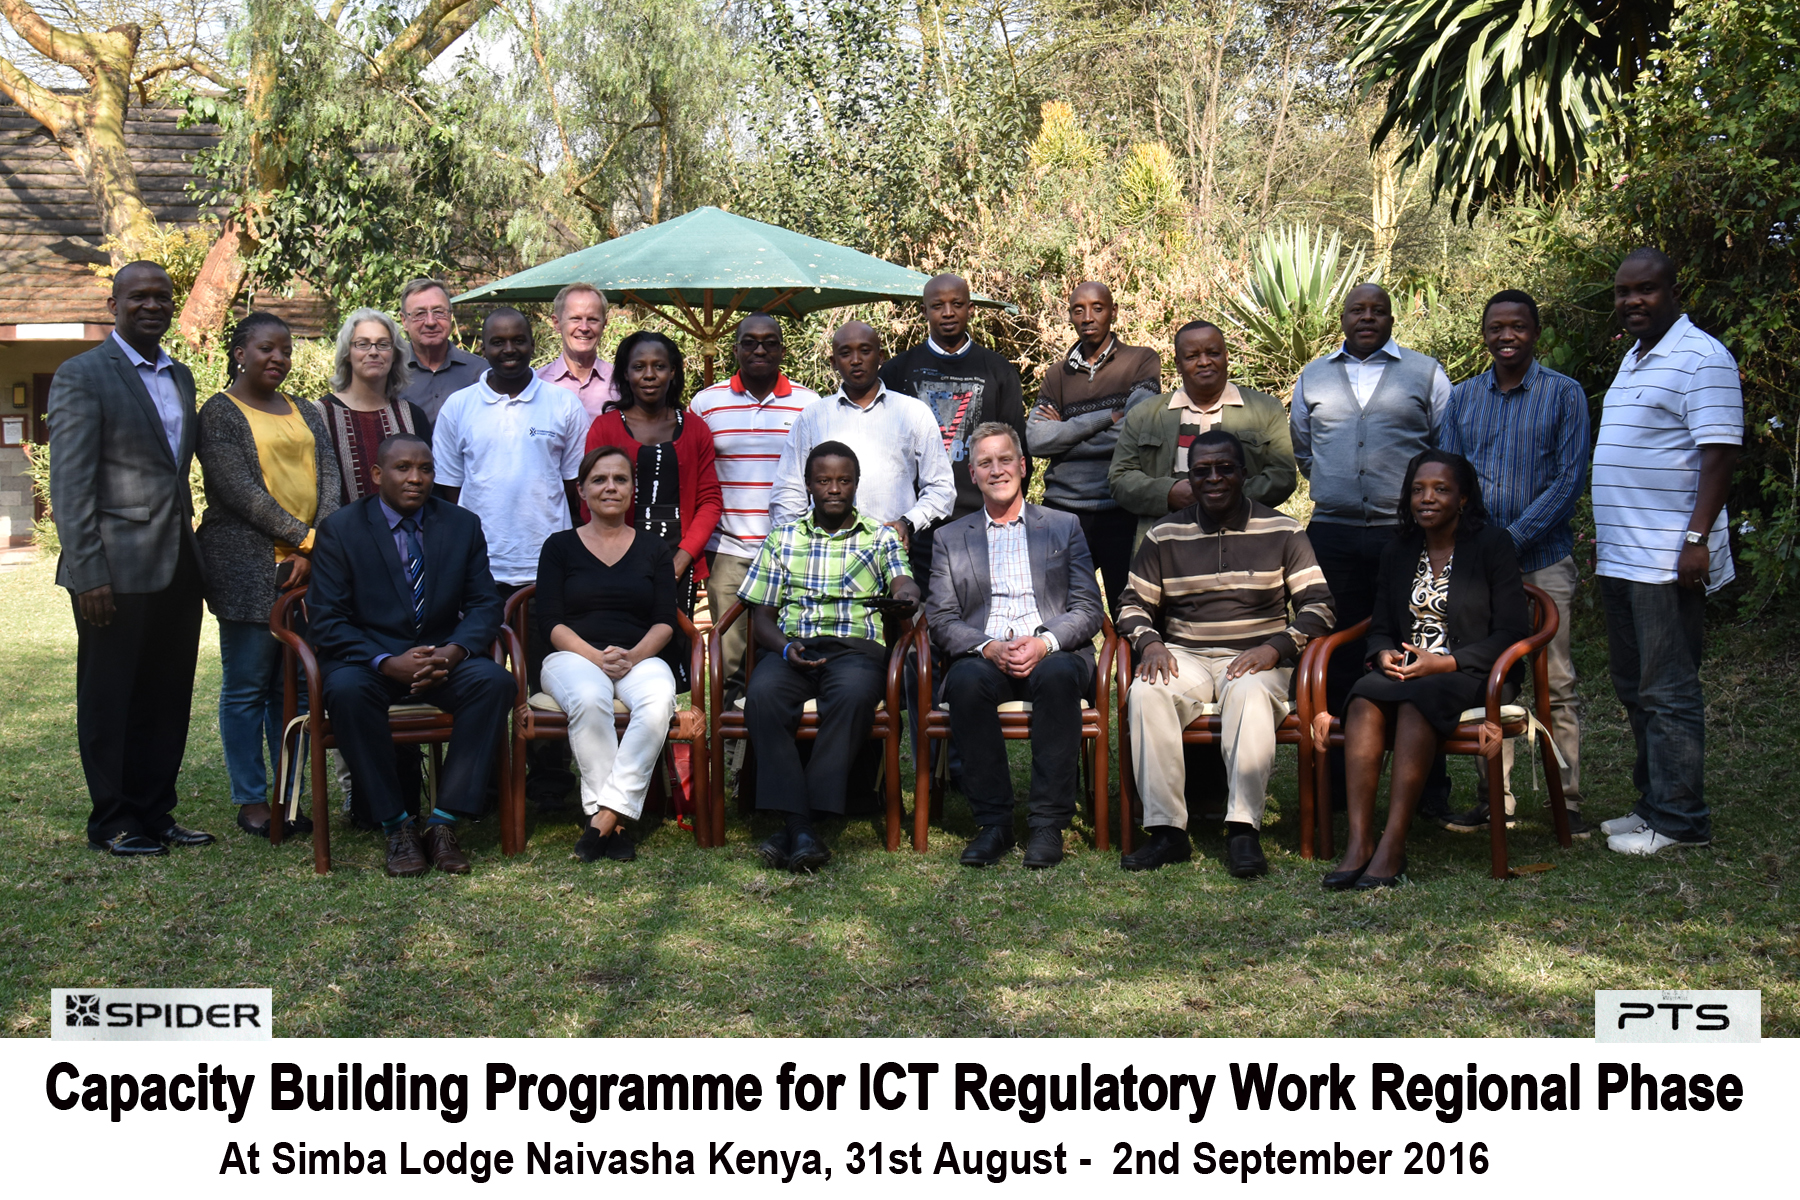 Group picture of pilot programme participants regional phase